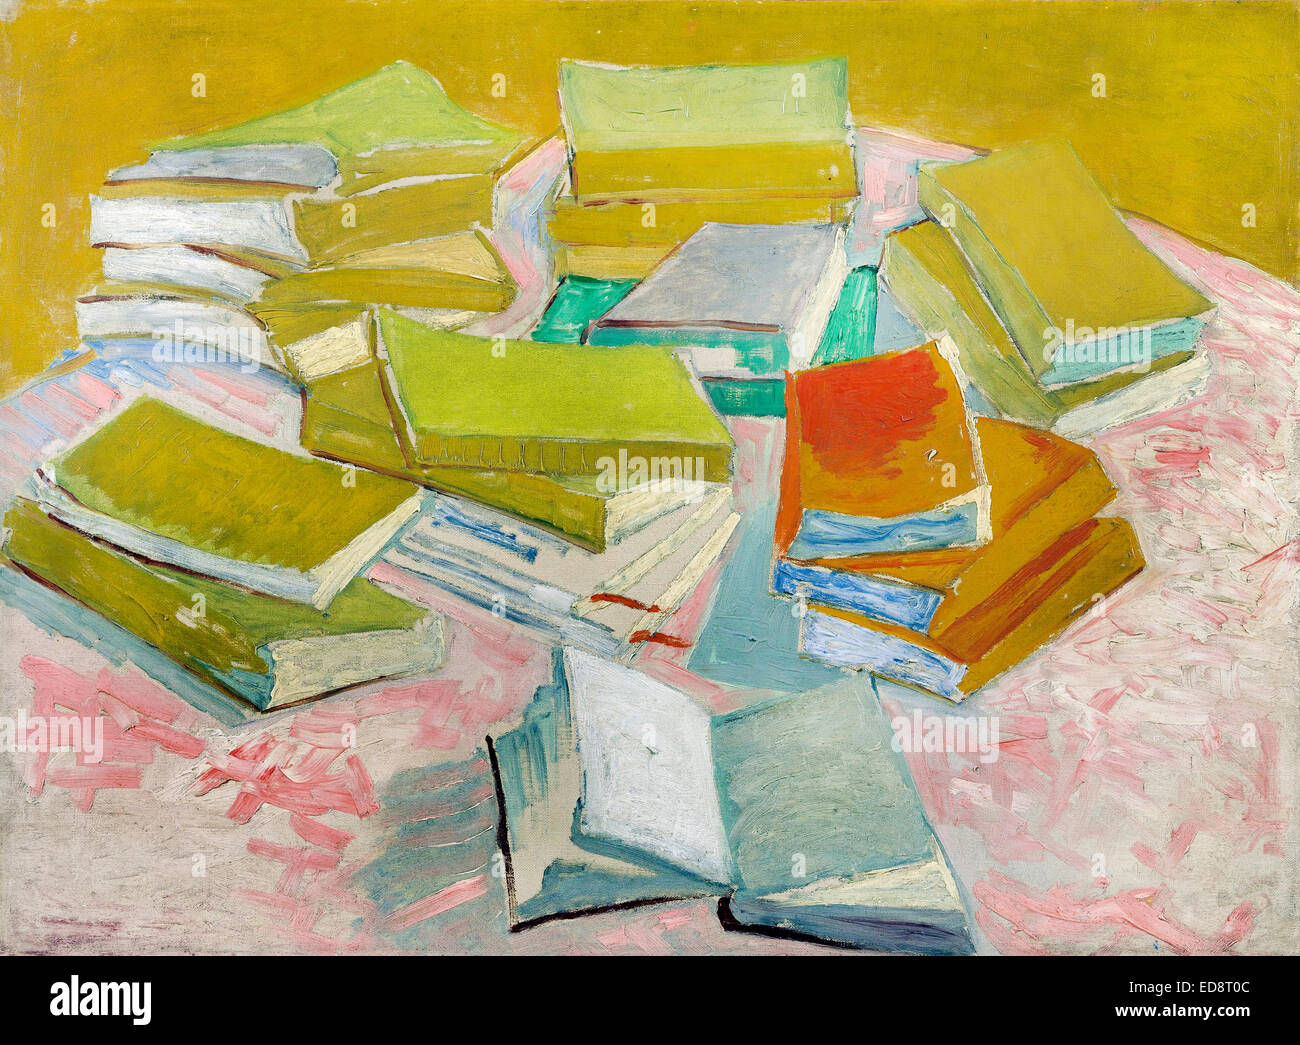 Vincent van Gogh, Piles of French Novels 1887 Oil on canvas. Van Gogh Museum, Amsterdam, Netherlands. - Stock Image